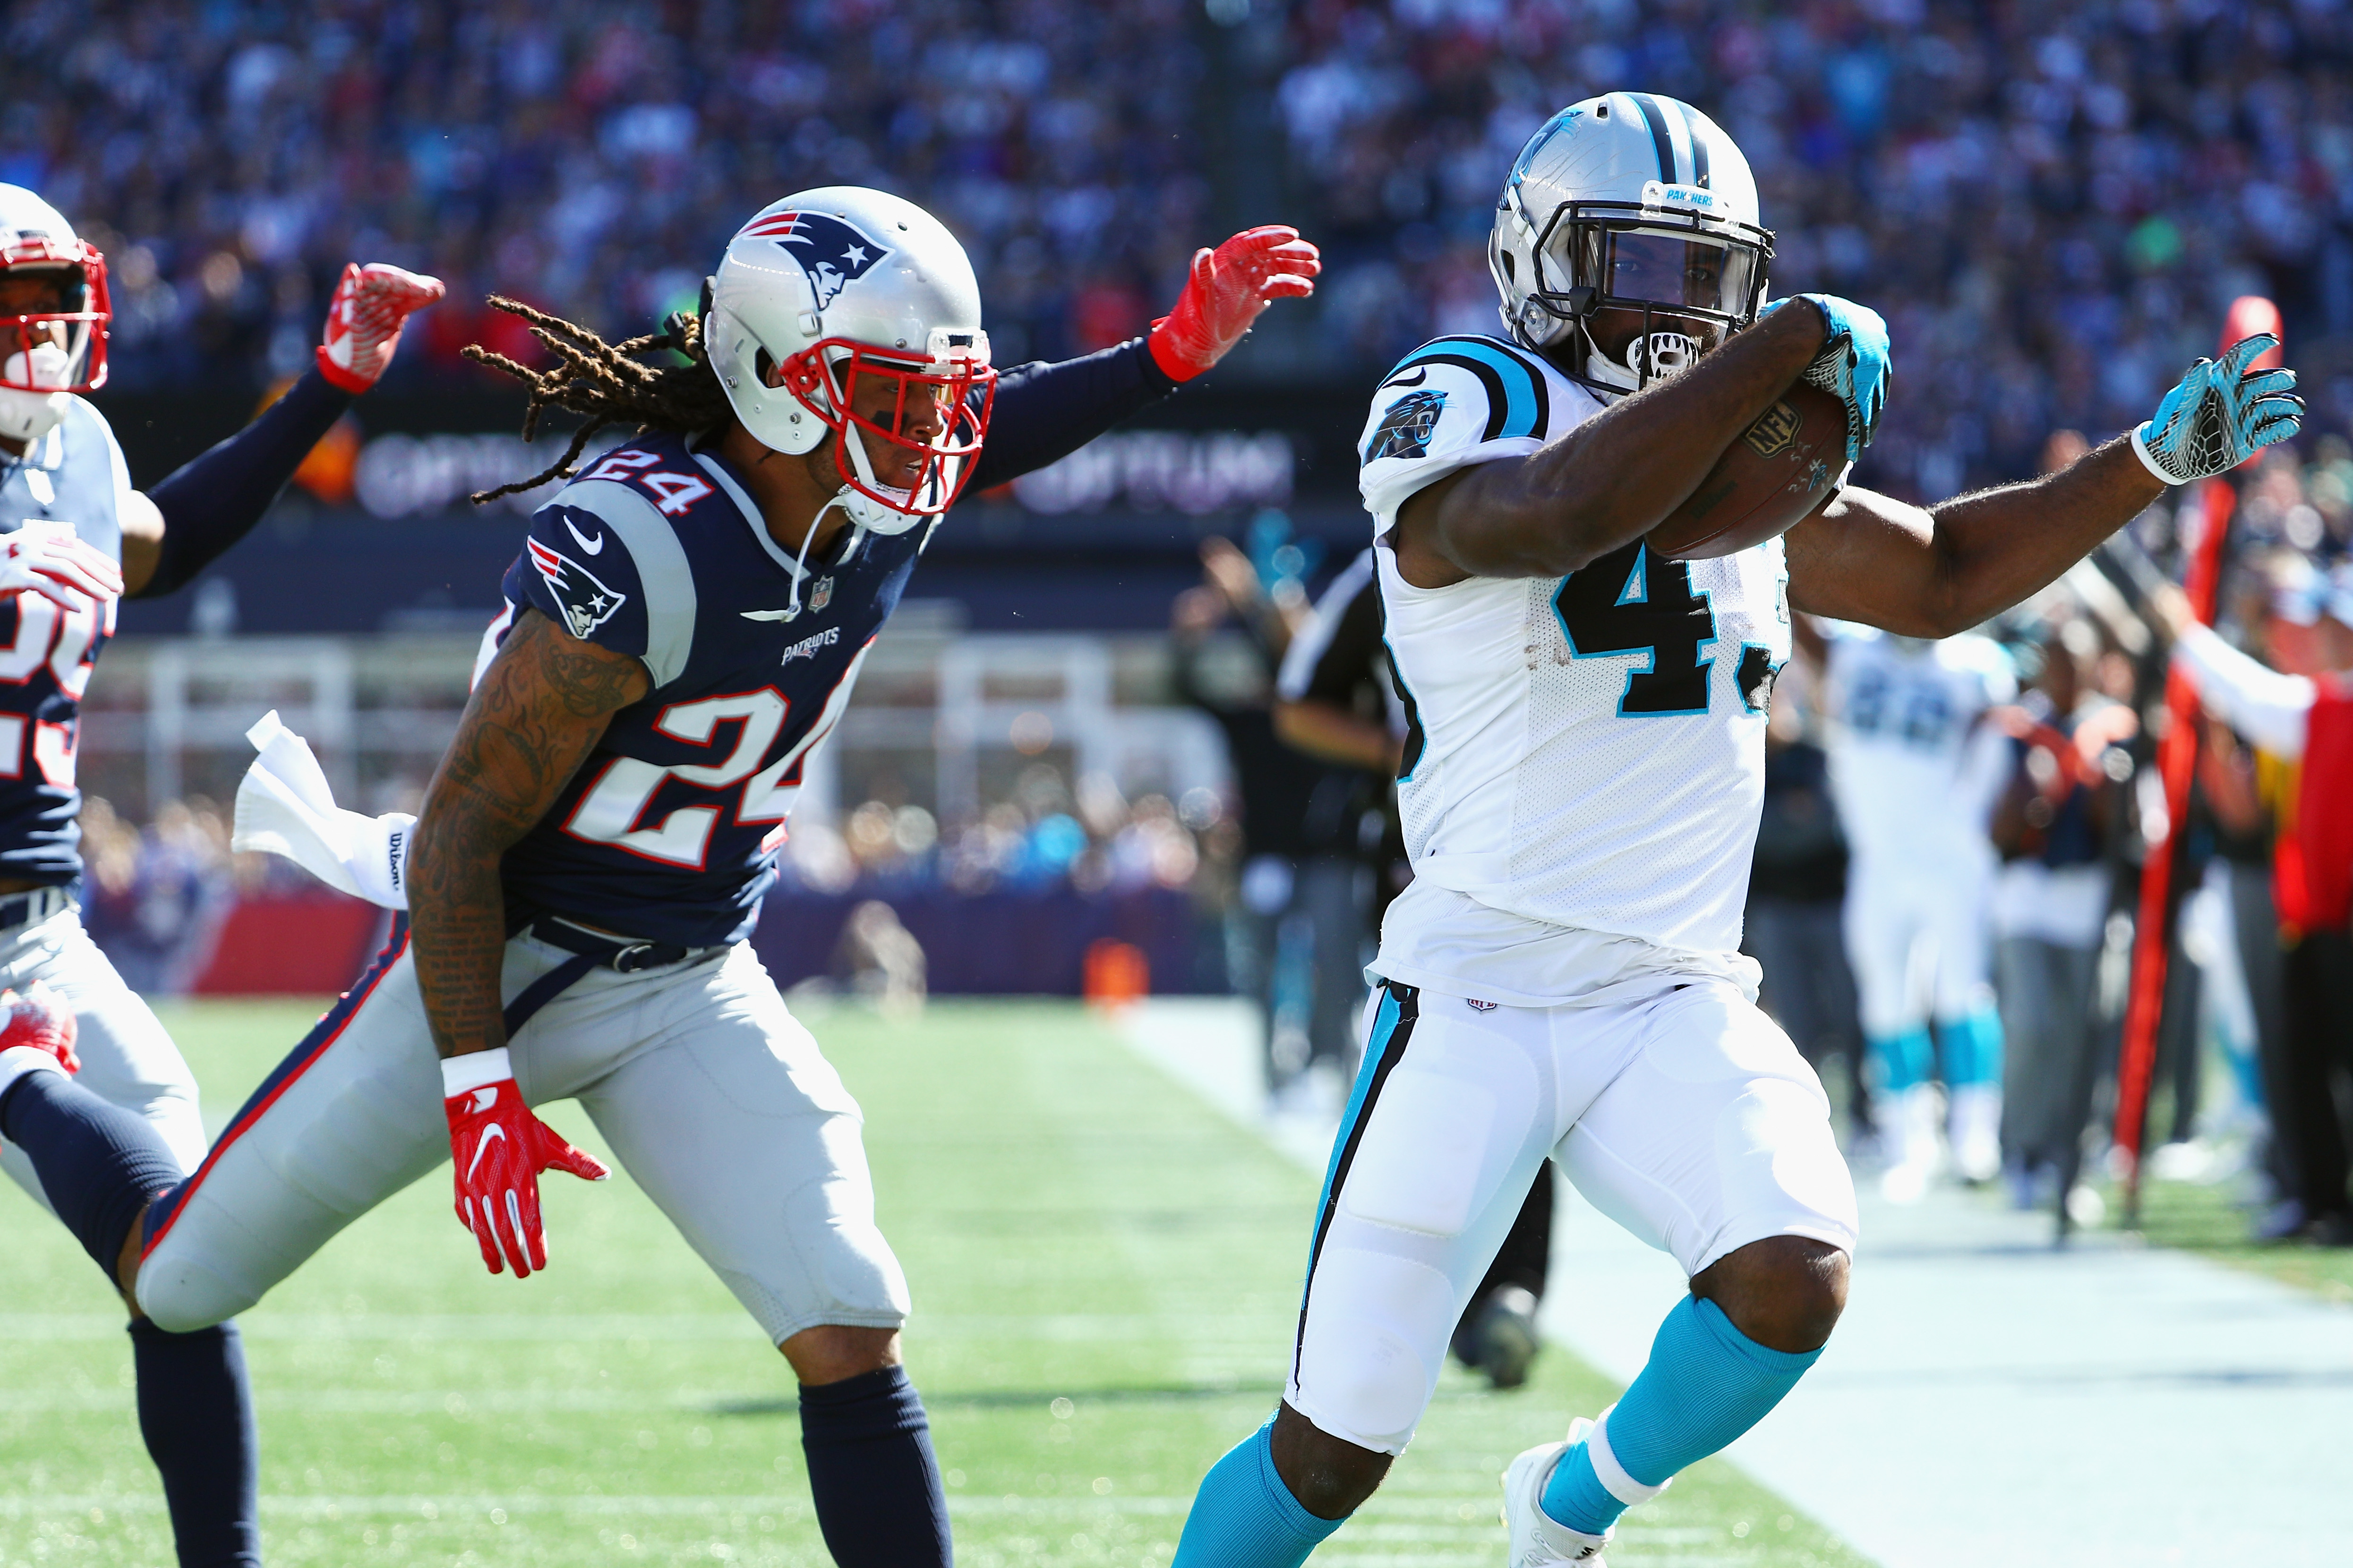 Patriots CB Stephon Gilmore Out Versus Jets With Concussion